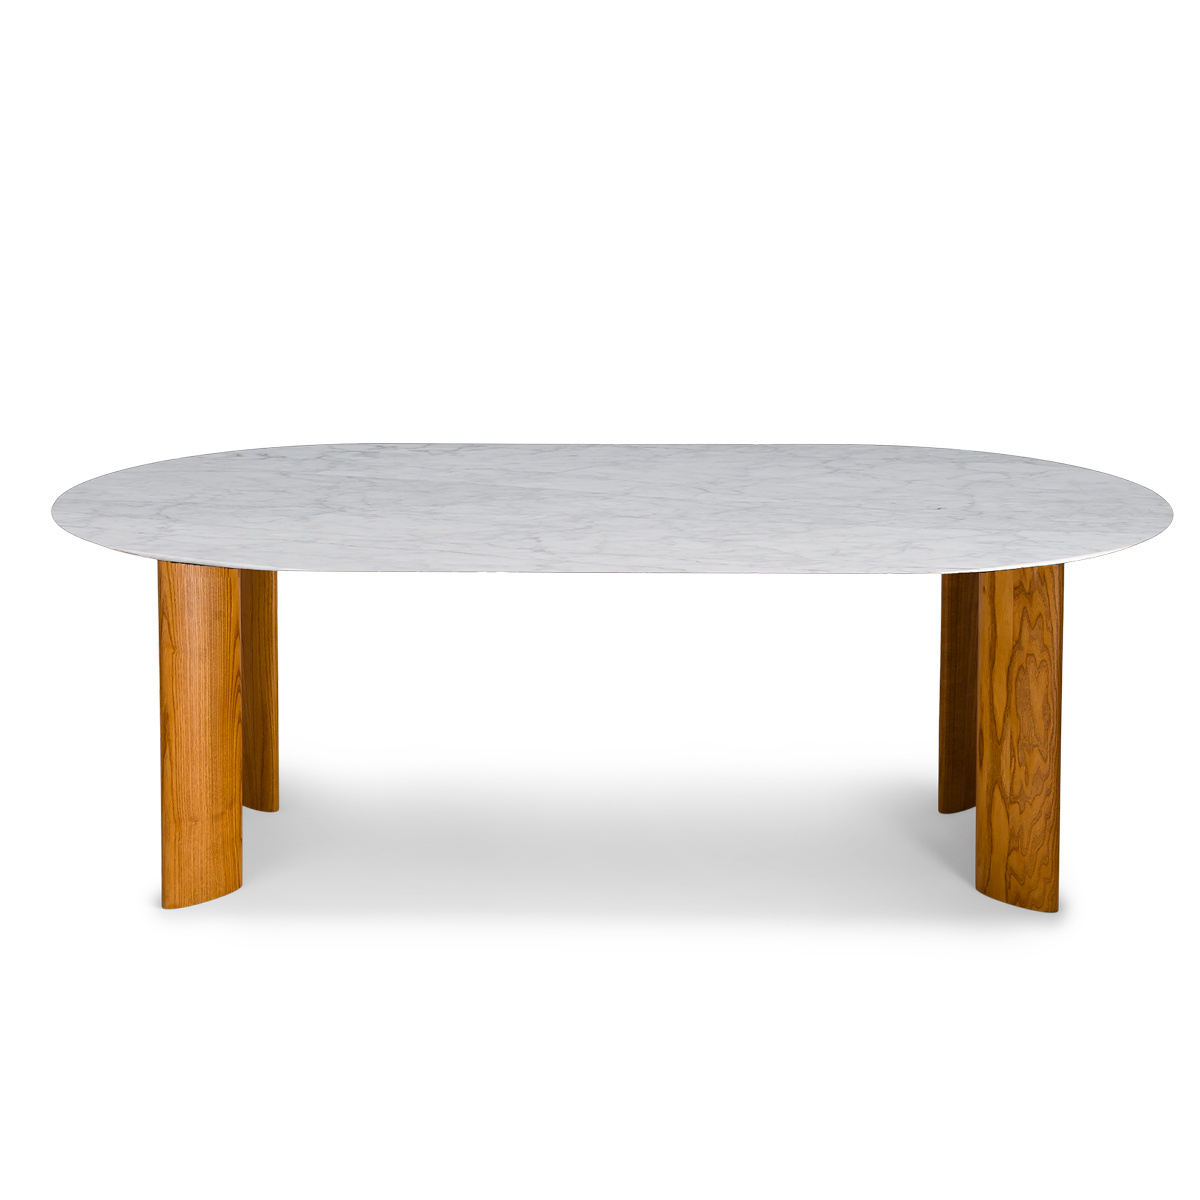 Carlotta Alta Dining Table White Marble and Iroko Finish Legs - 8 Seats